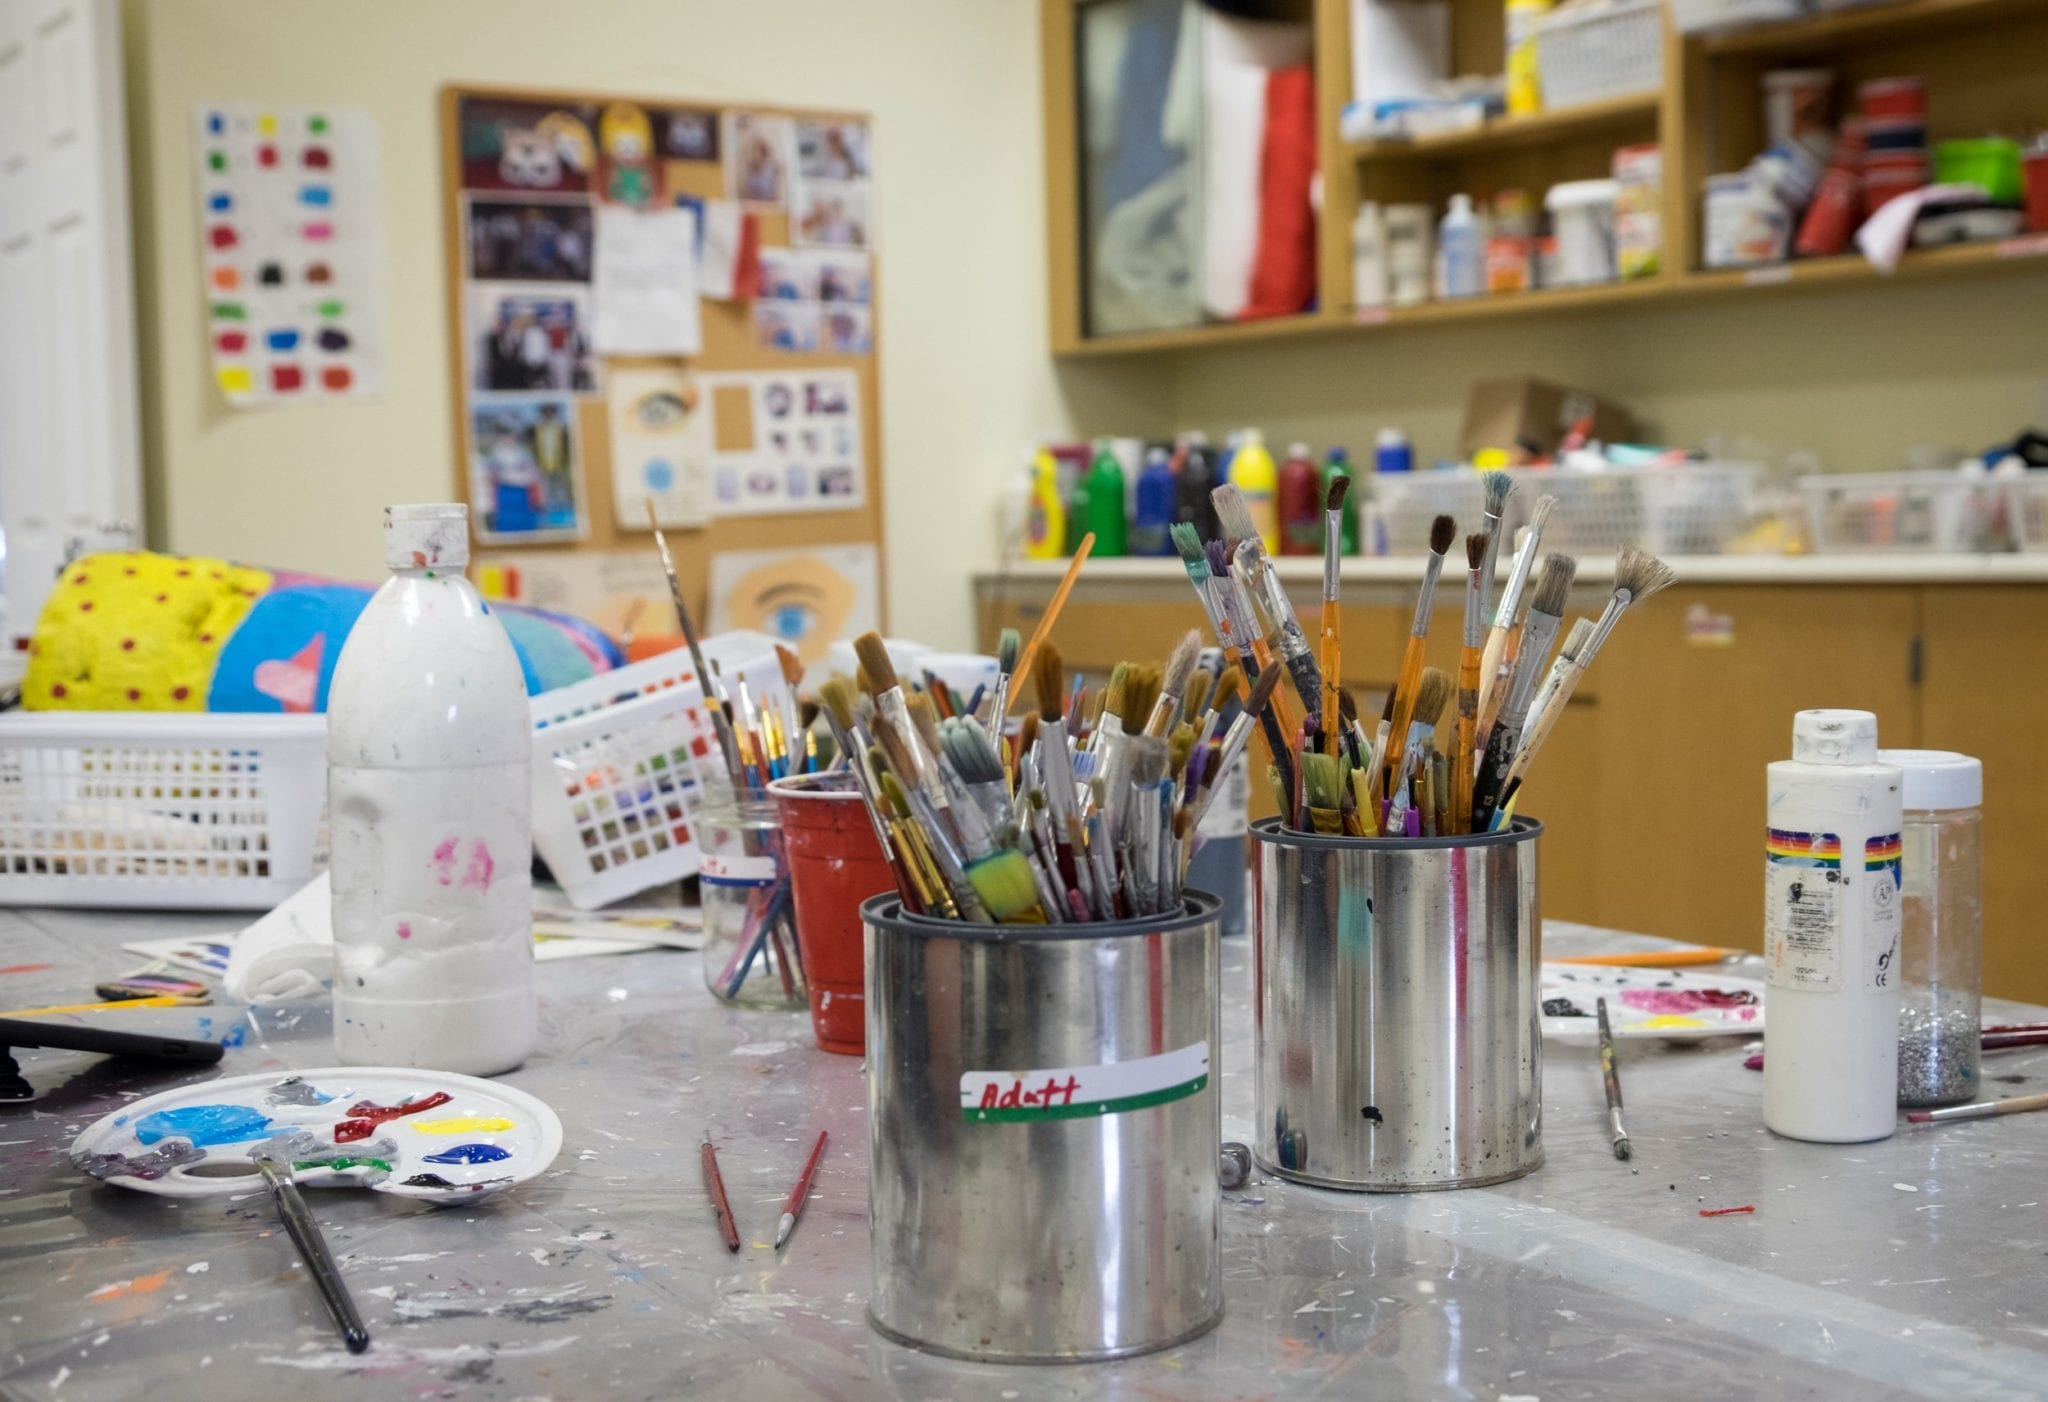 Paintbrushes on a table at the Mi-Careme Centre.